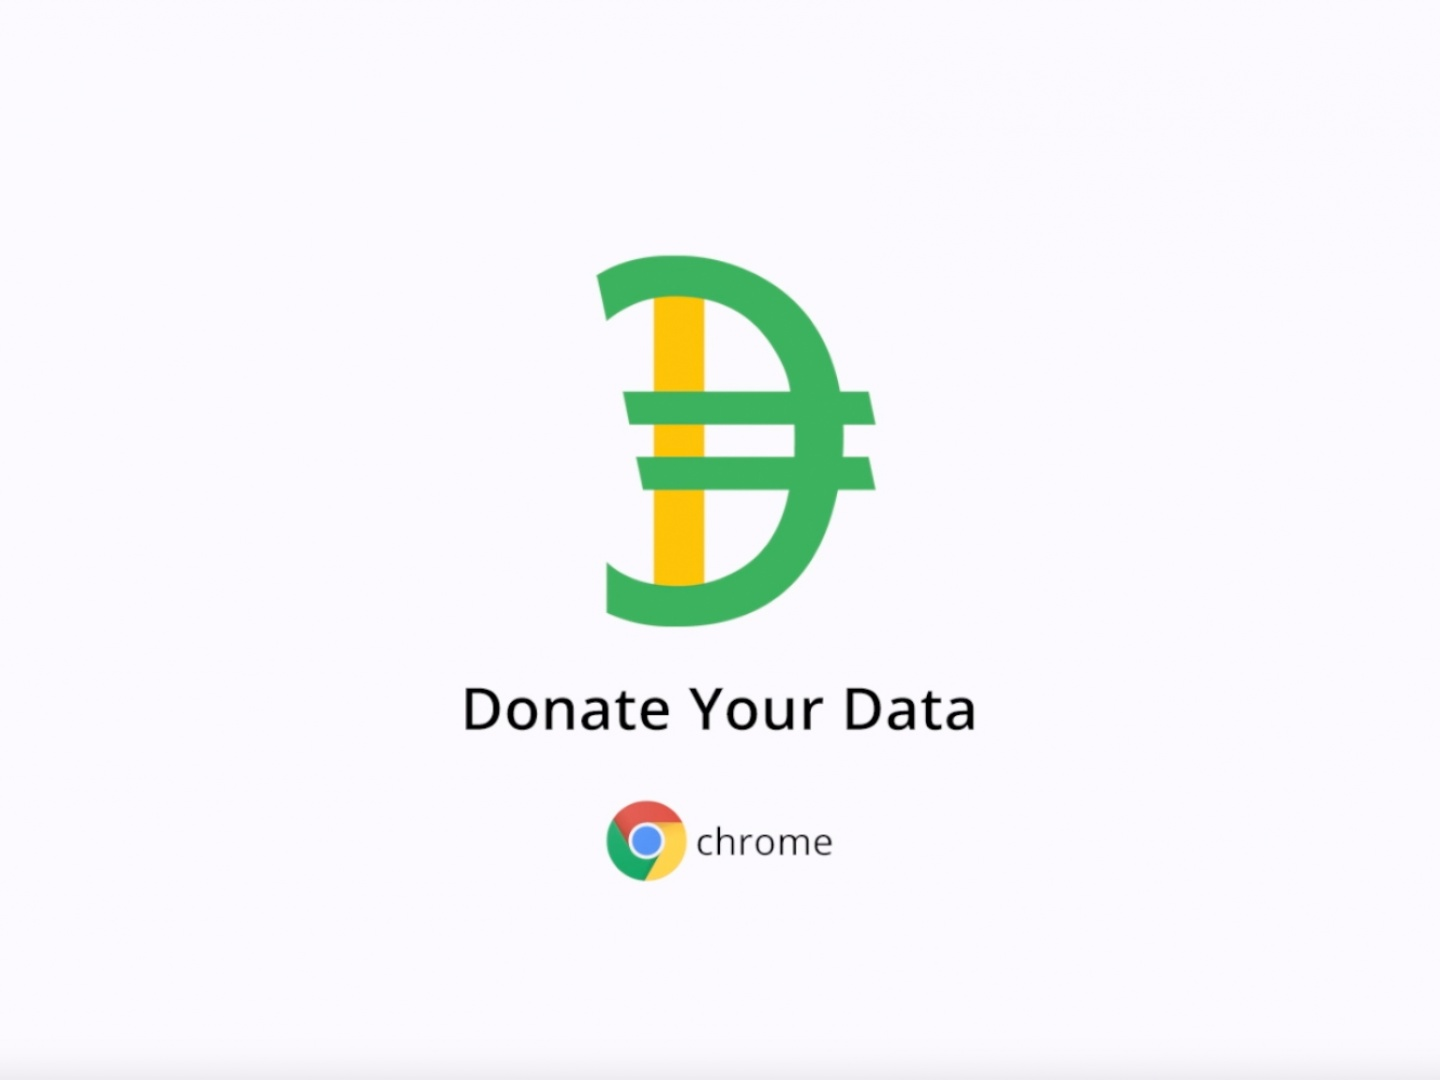 Google Chrome - Donate Your Data Thumbnail